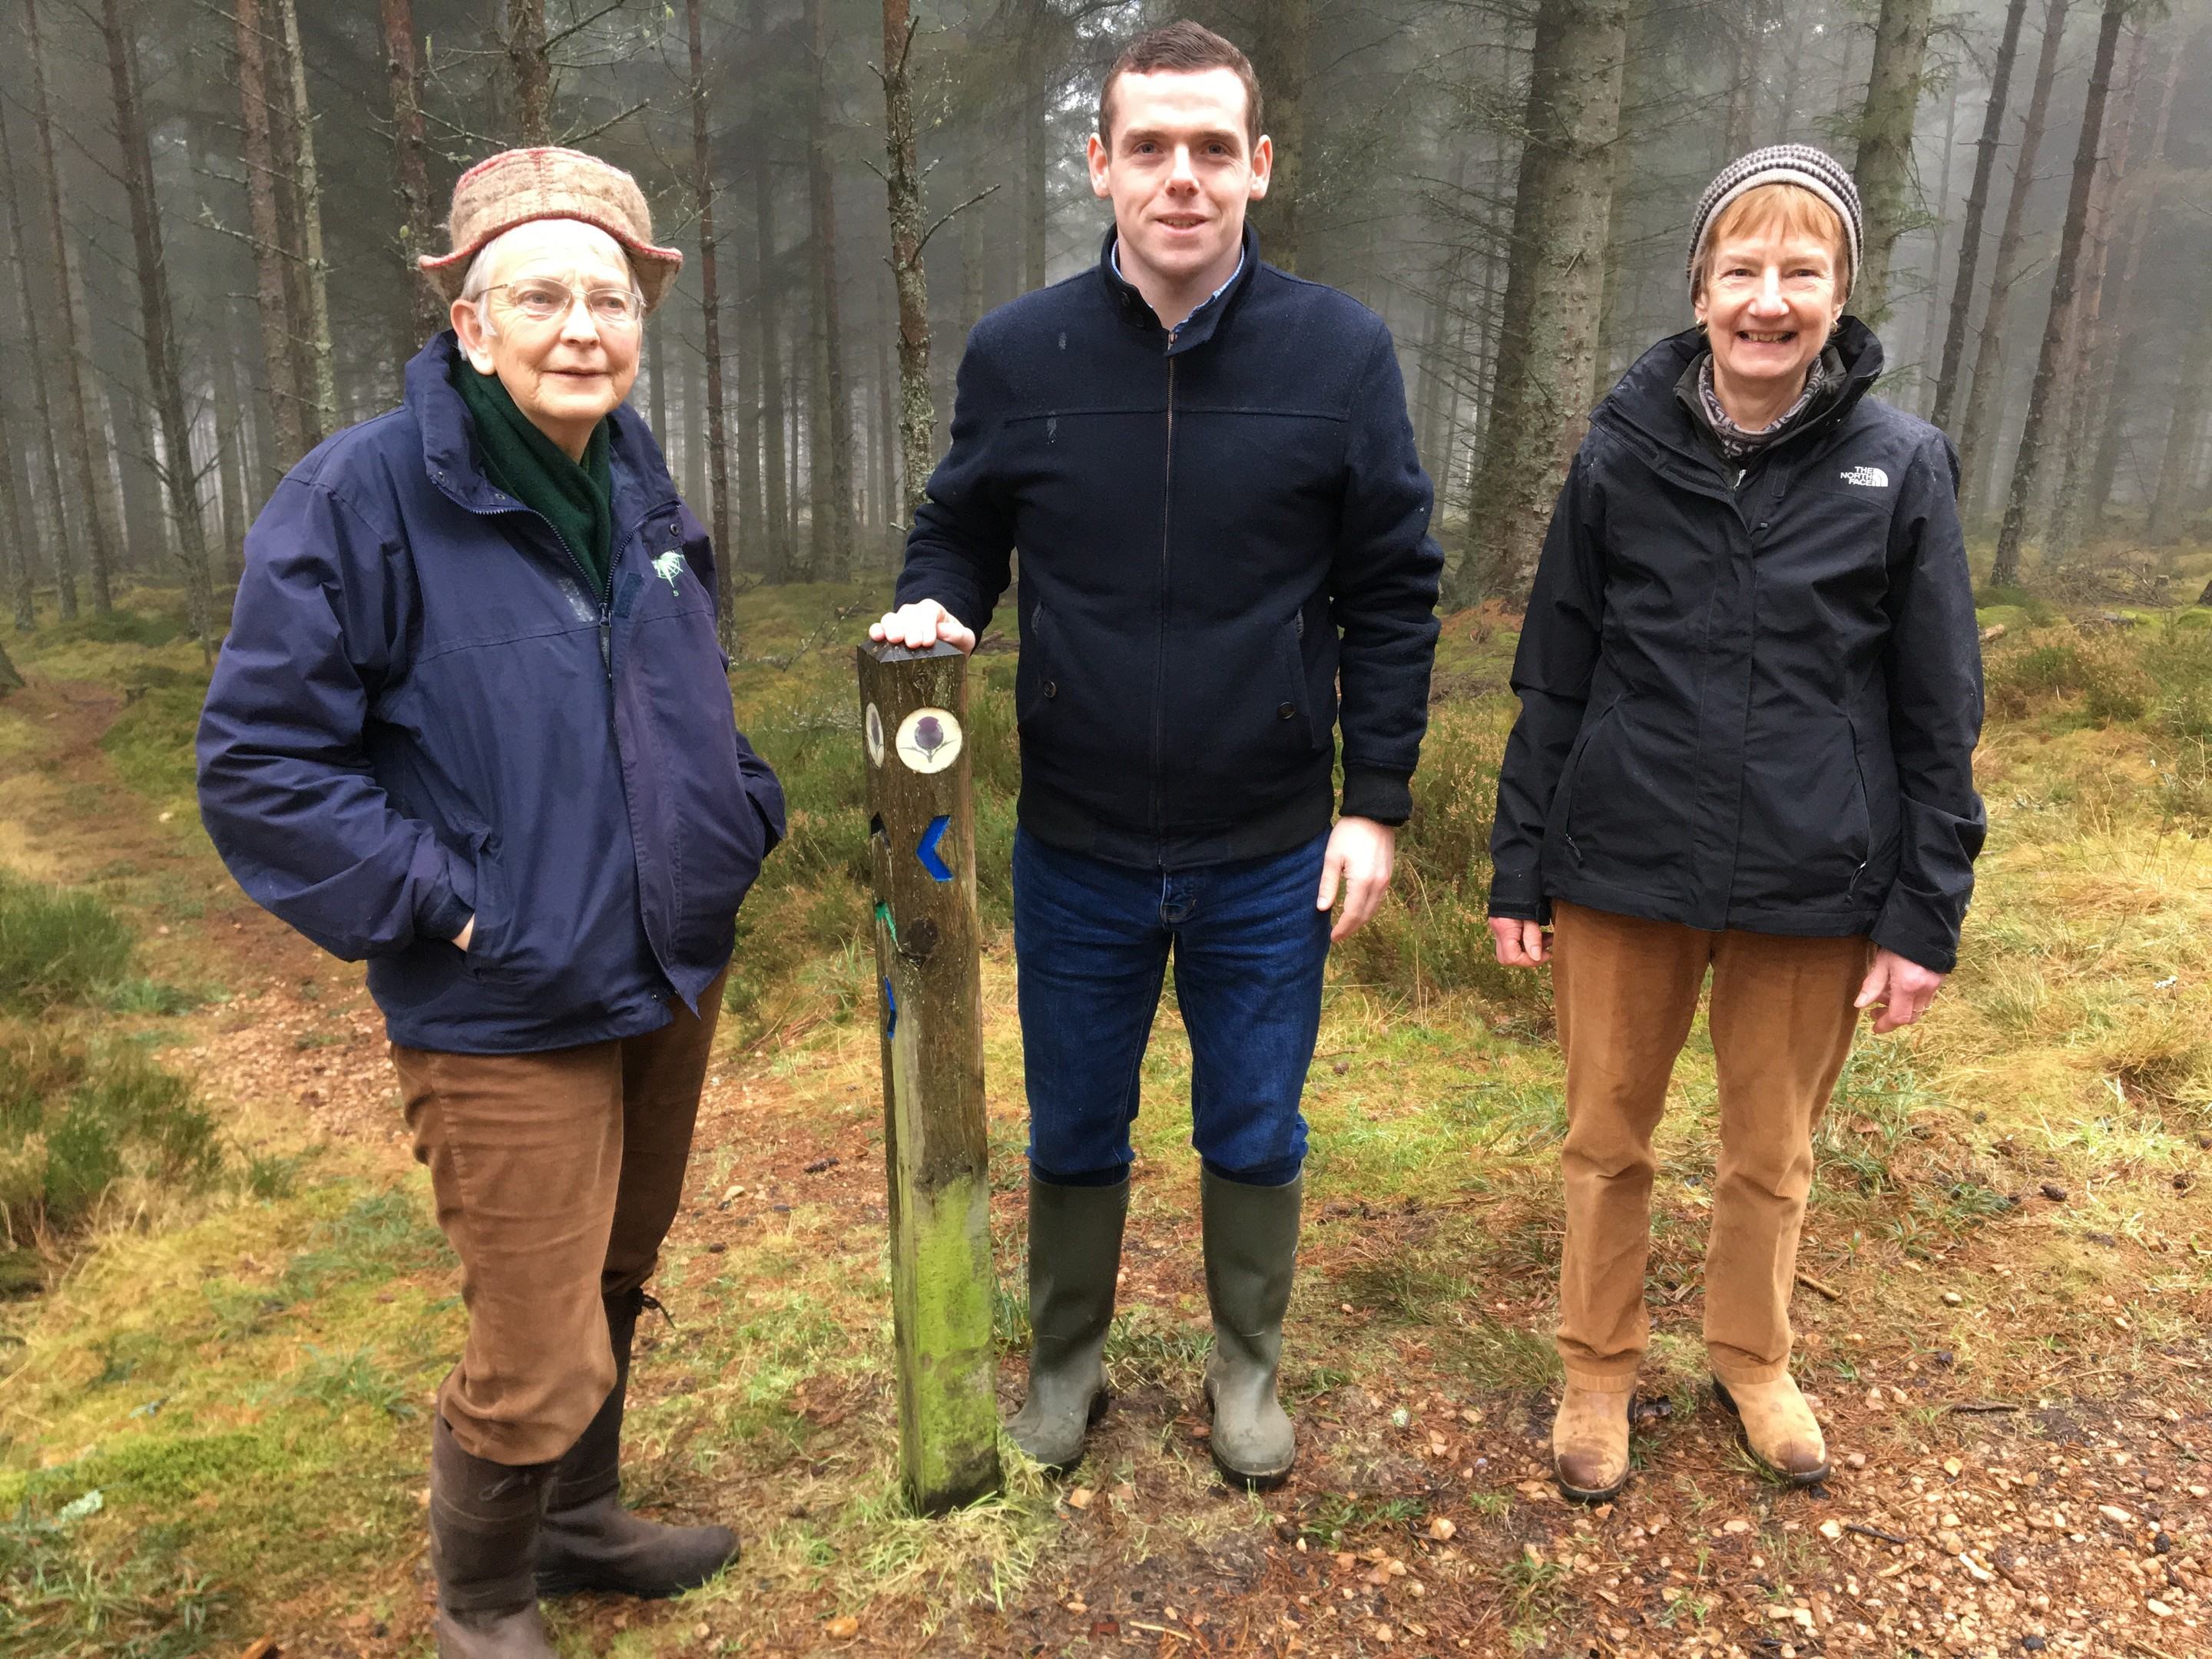 Mary Stelmach, chairwoman of Balloch Riders' Access Group, Moray MP Douglas Ross and vice-chairwoman Liz Jones in Balloch Wood.